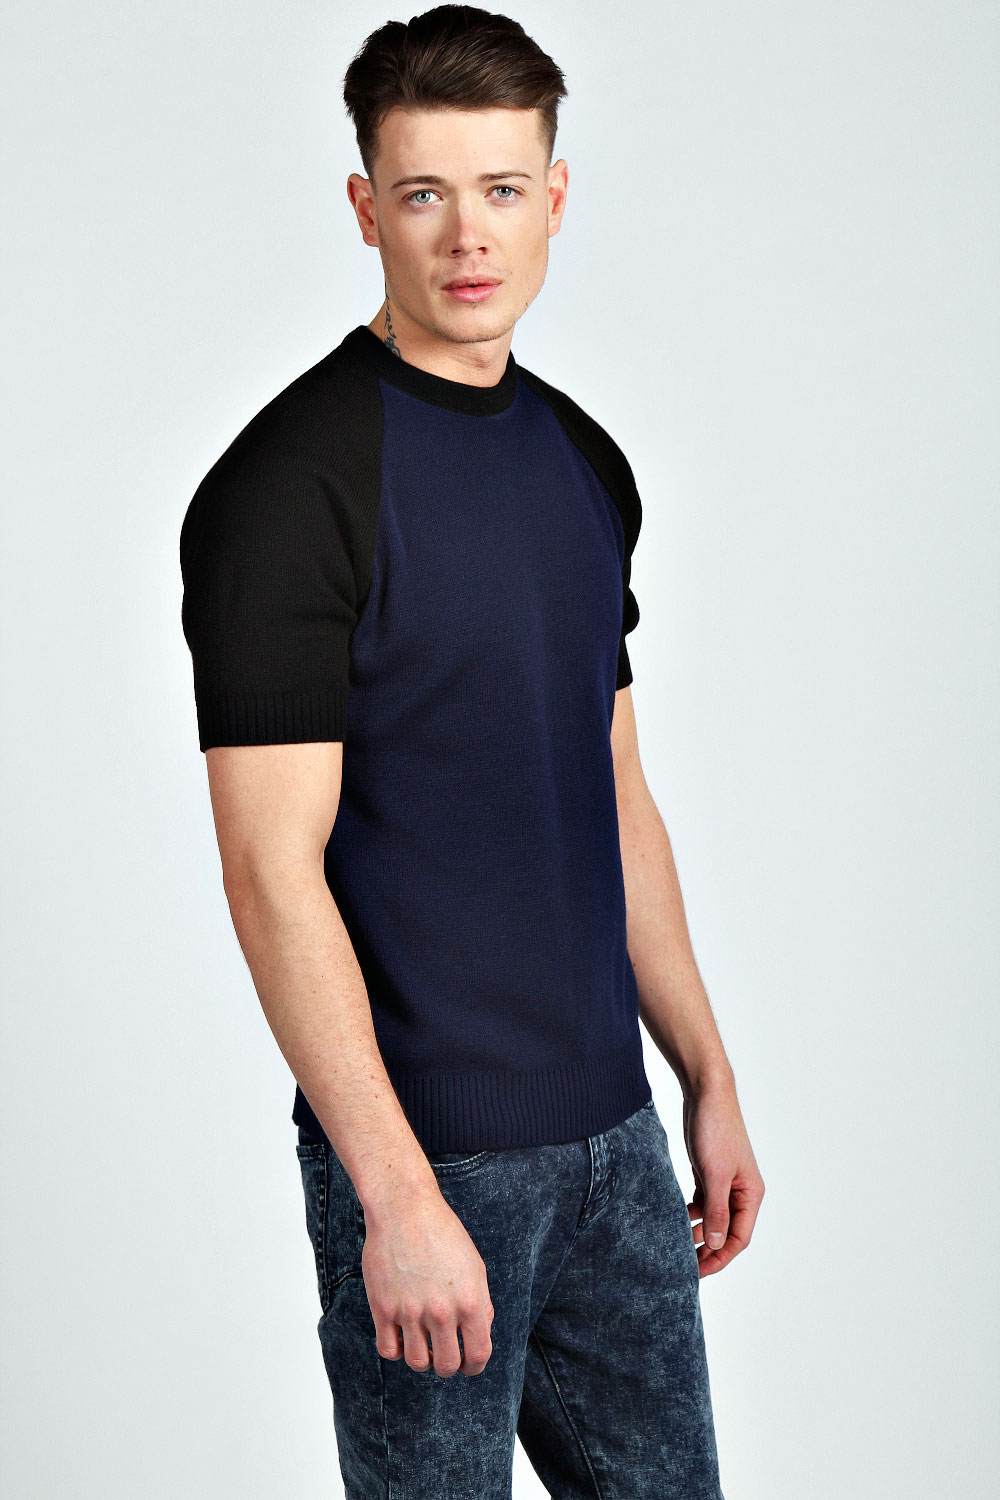 Find great deals on eBay for mens short sleeve shirts. Shop with confidence.